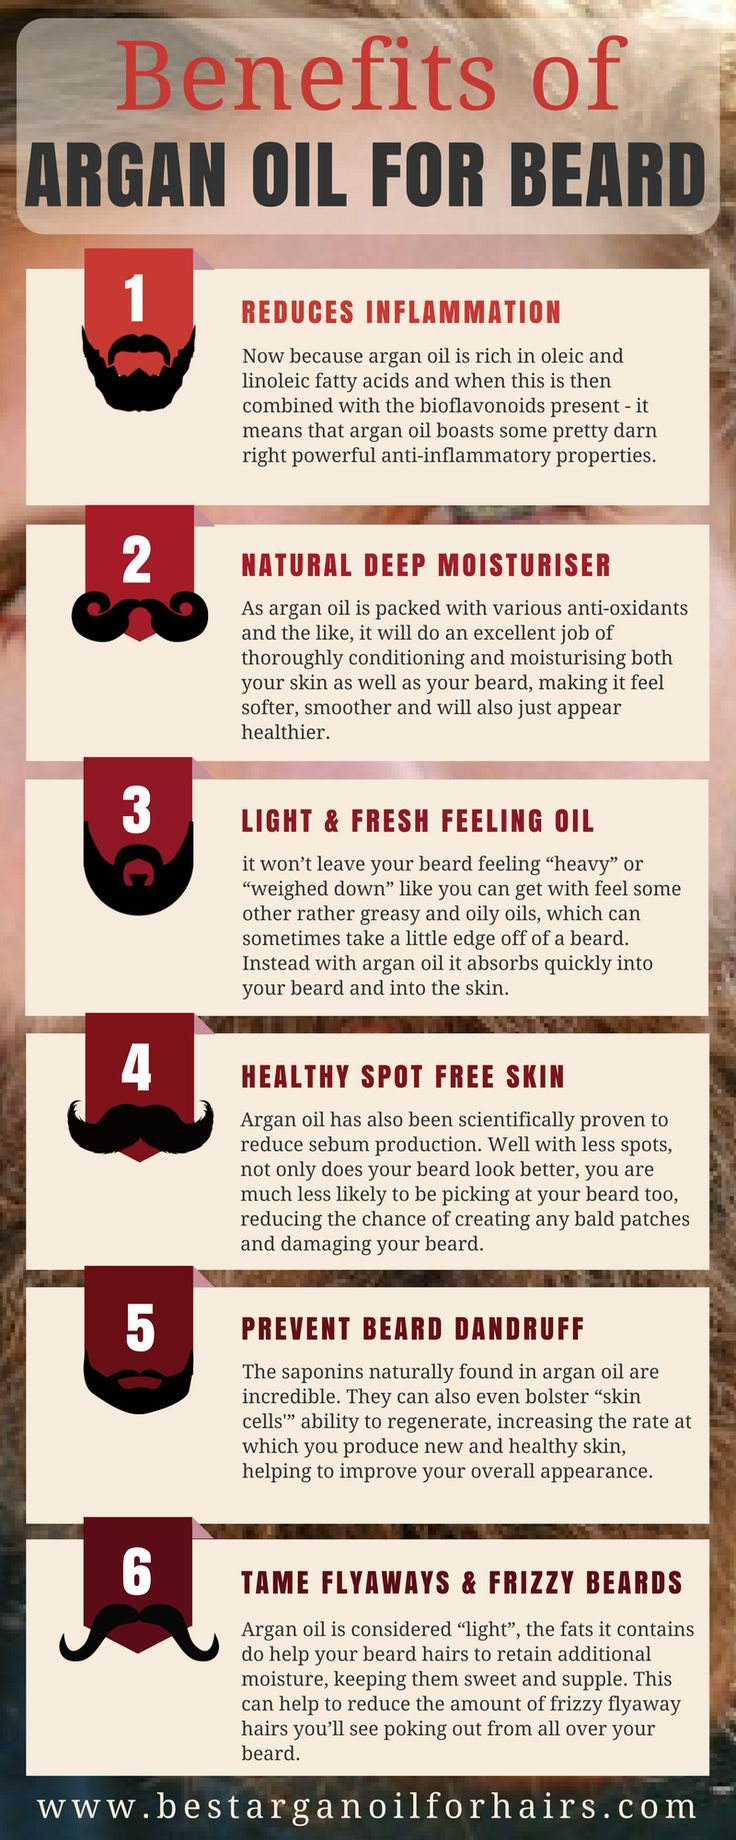 7 Advantages of Argan Oil for Your Beard #Argan oil is also known as Liquid Gold. Many people use argan oil for hair, skin, acne, and much more. In this infographic, I have described benefits of argan oil for the #beard. https://www.bestarganoilforhairs.com/